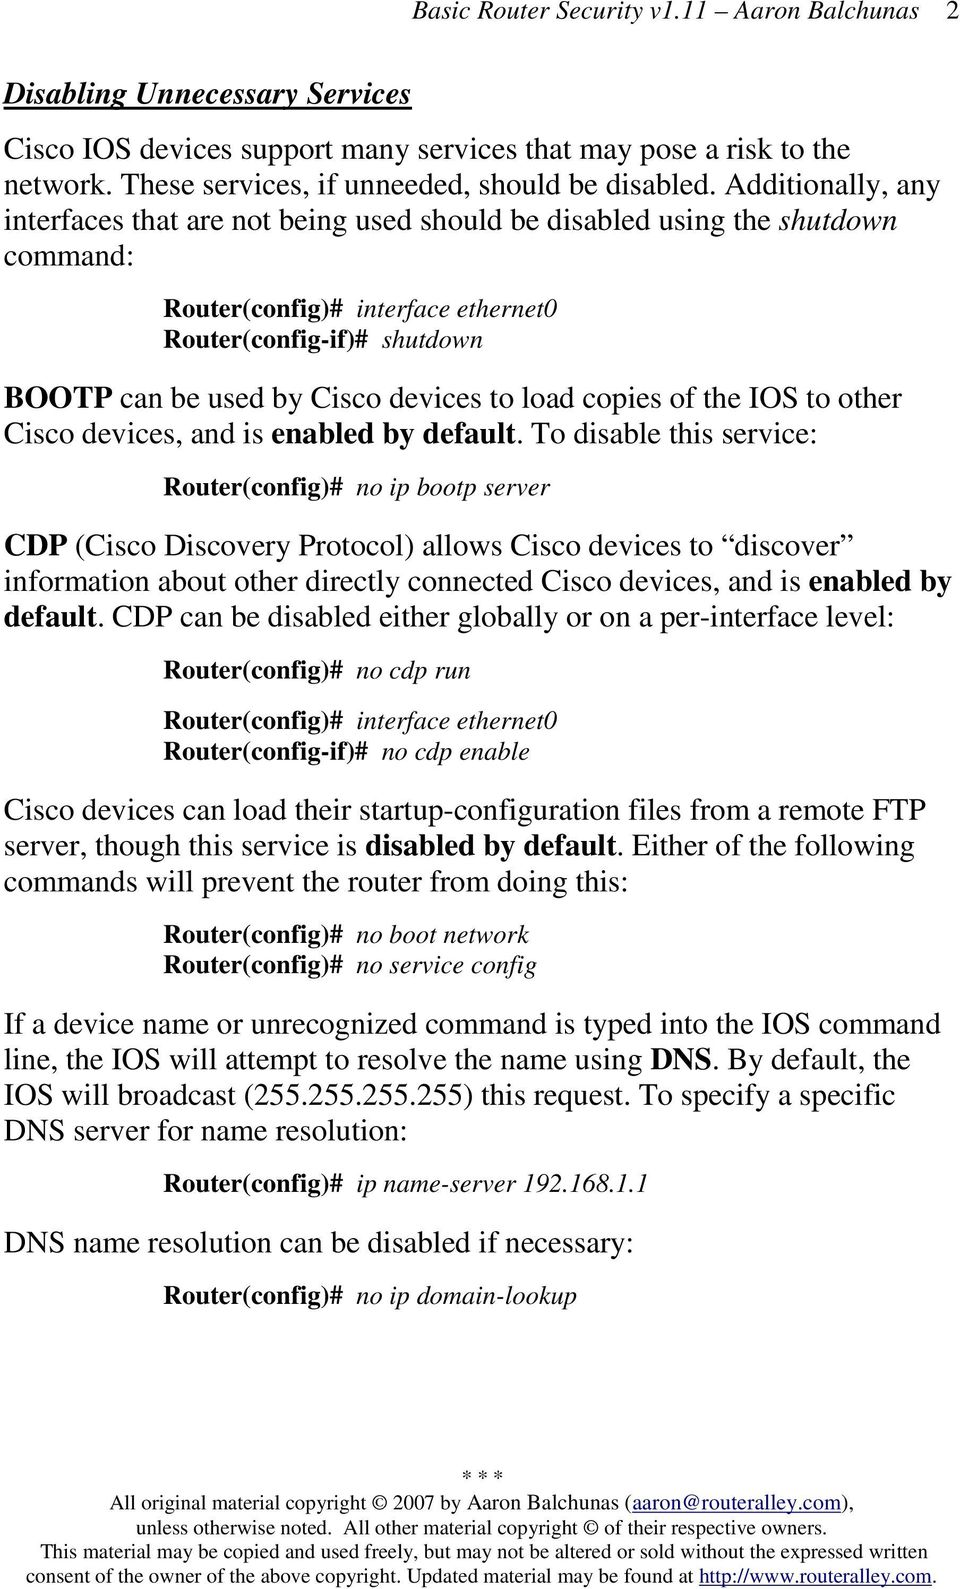 Basic Router Security - - PDF